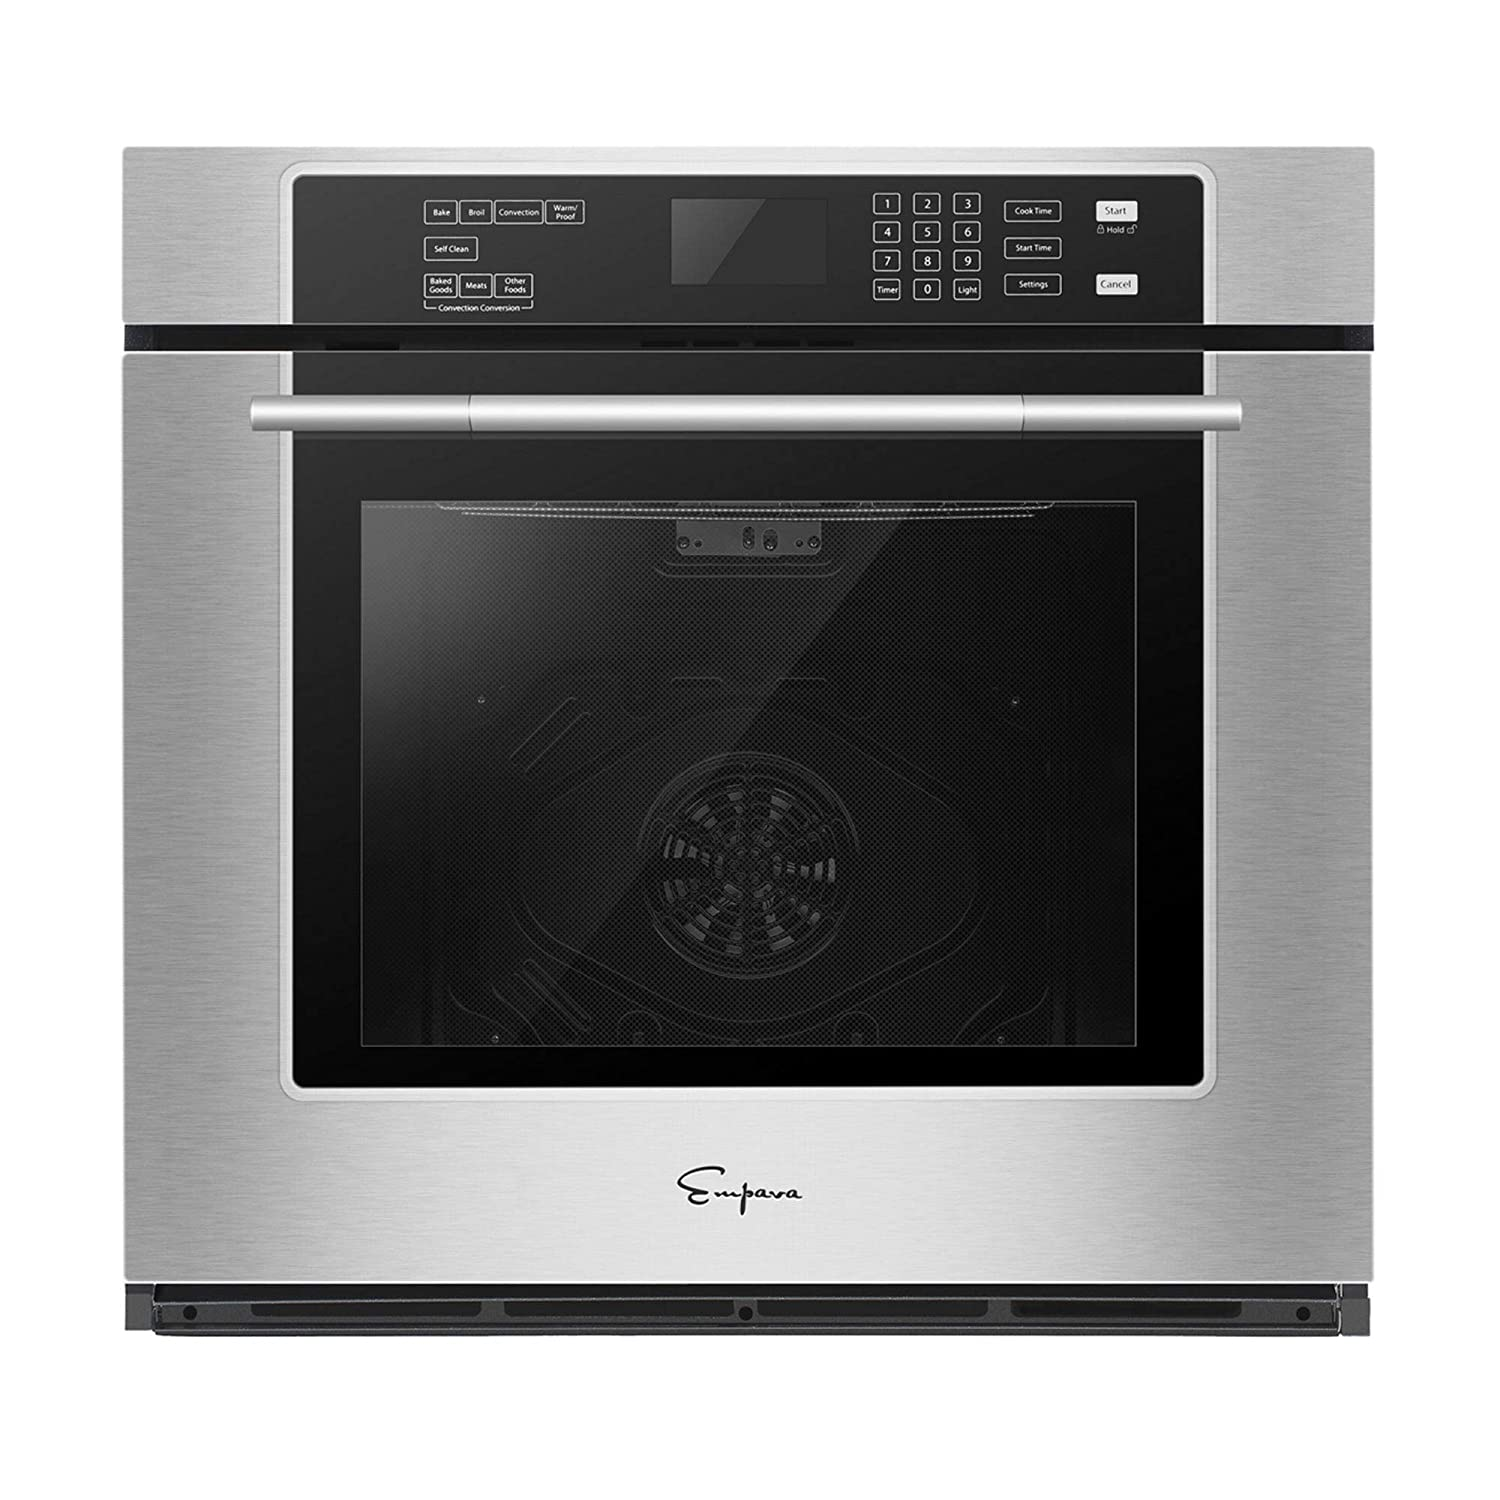 Empava 30 in Electric Single Wall Ovens Built-in Self-cleaning Convection Fan Touch Control EMPV-30WO01, Stainless Steel